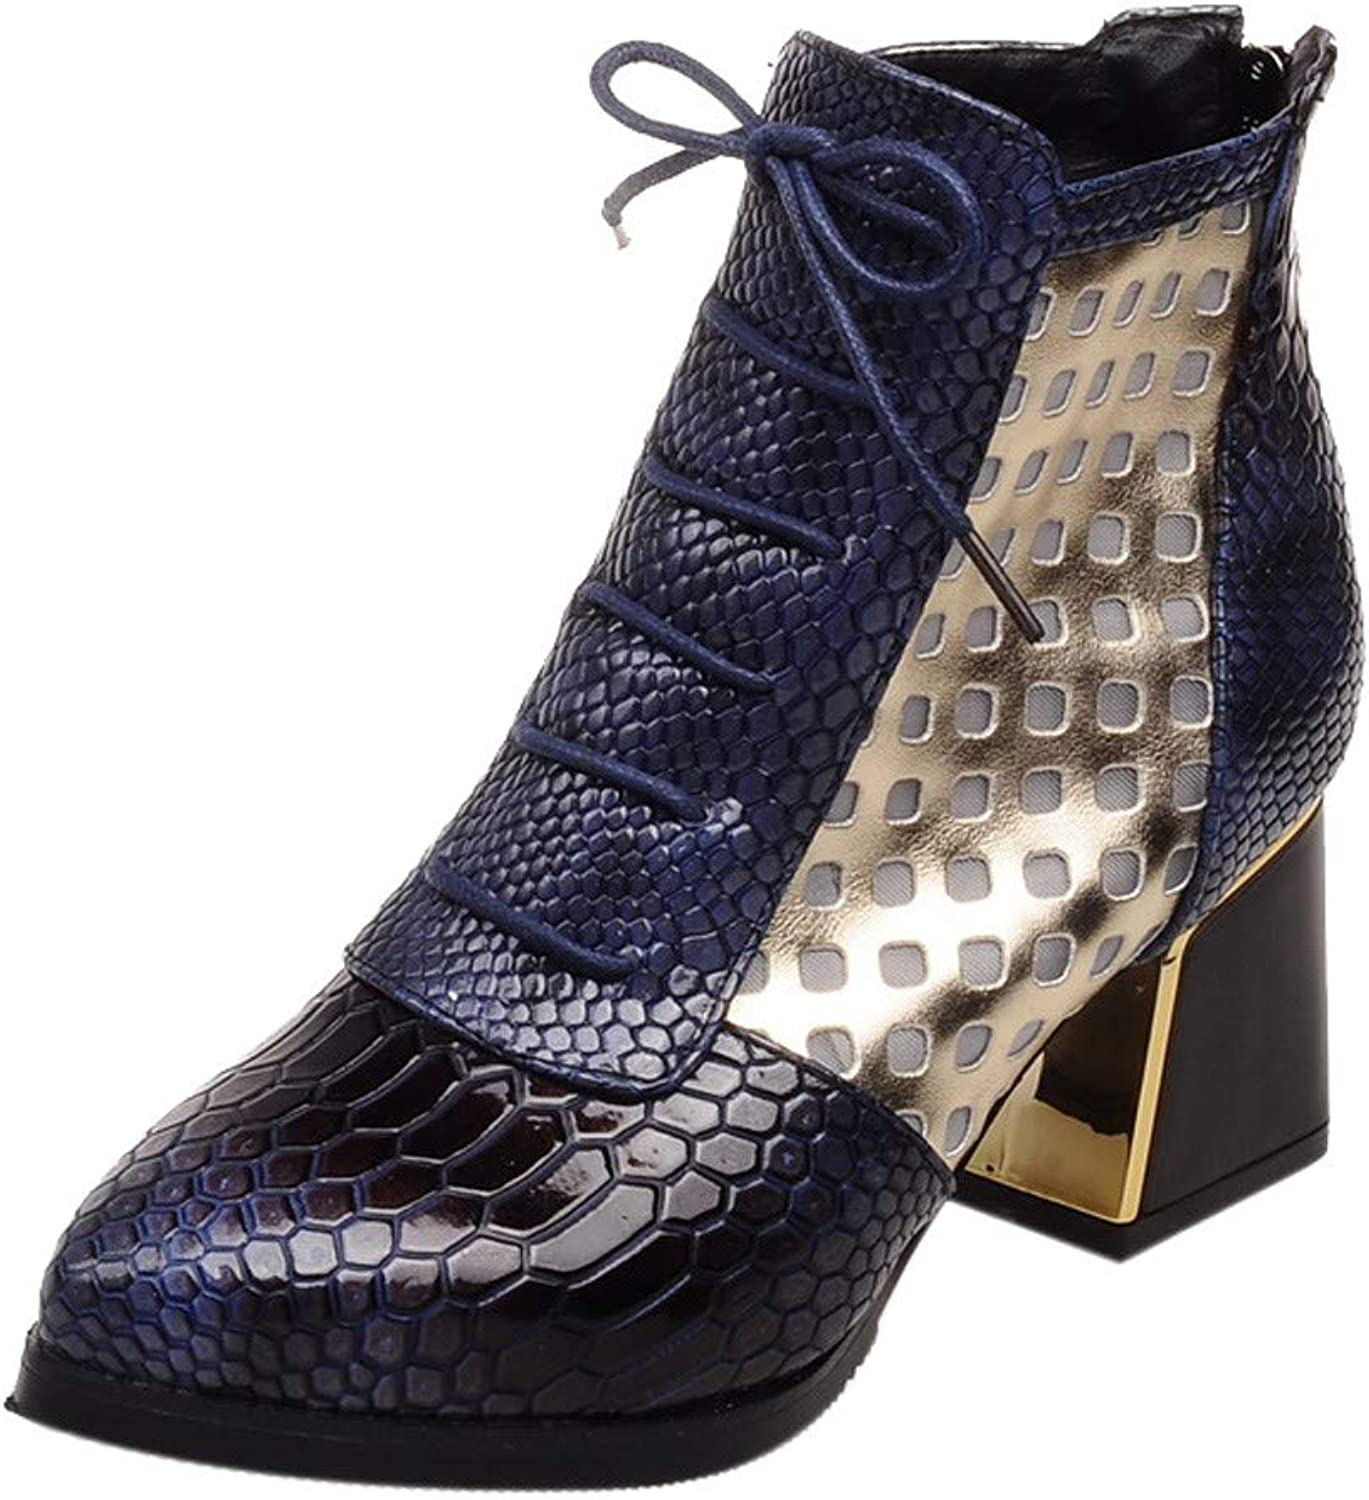 Sonmer Women Fashion Snake Pattern Ankle Boots High Heels Short Boots Pointed Toe Winter shoes (bluee, 6)